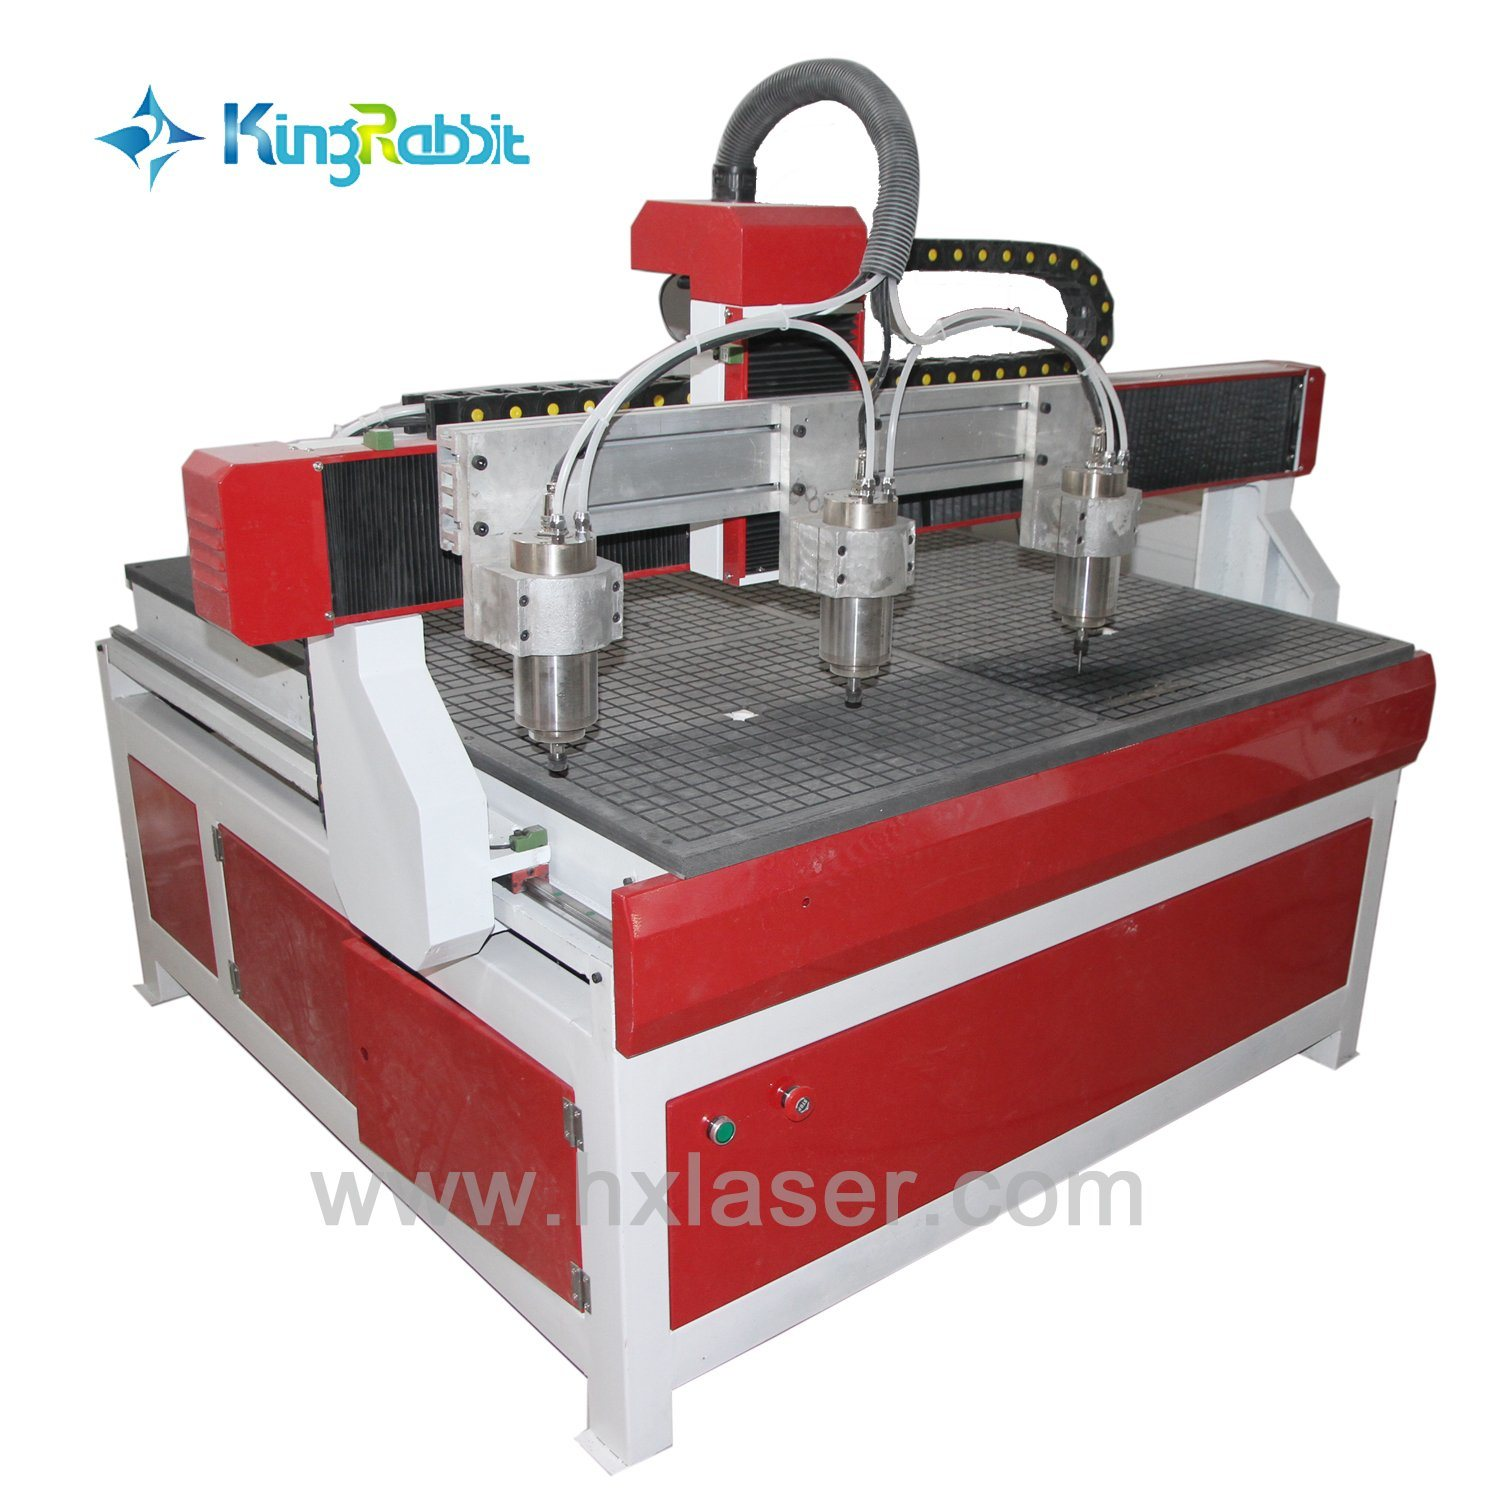 Hot Item Artcam 3d Wood Cnc Router Woodworking Cnc Router 1212 Cnc Router